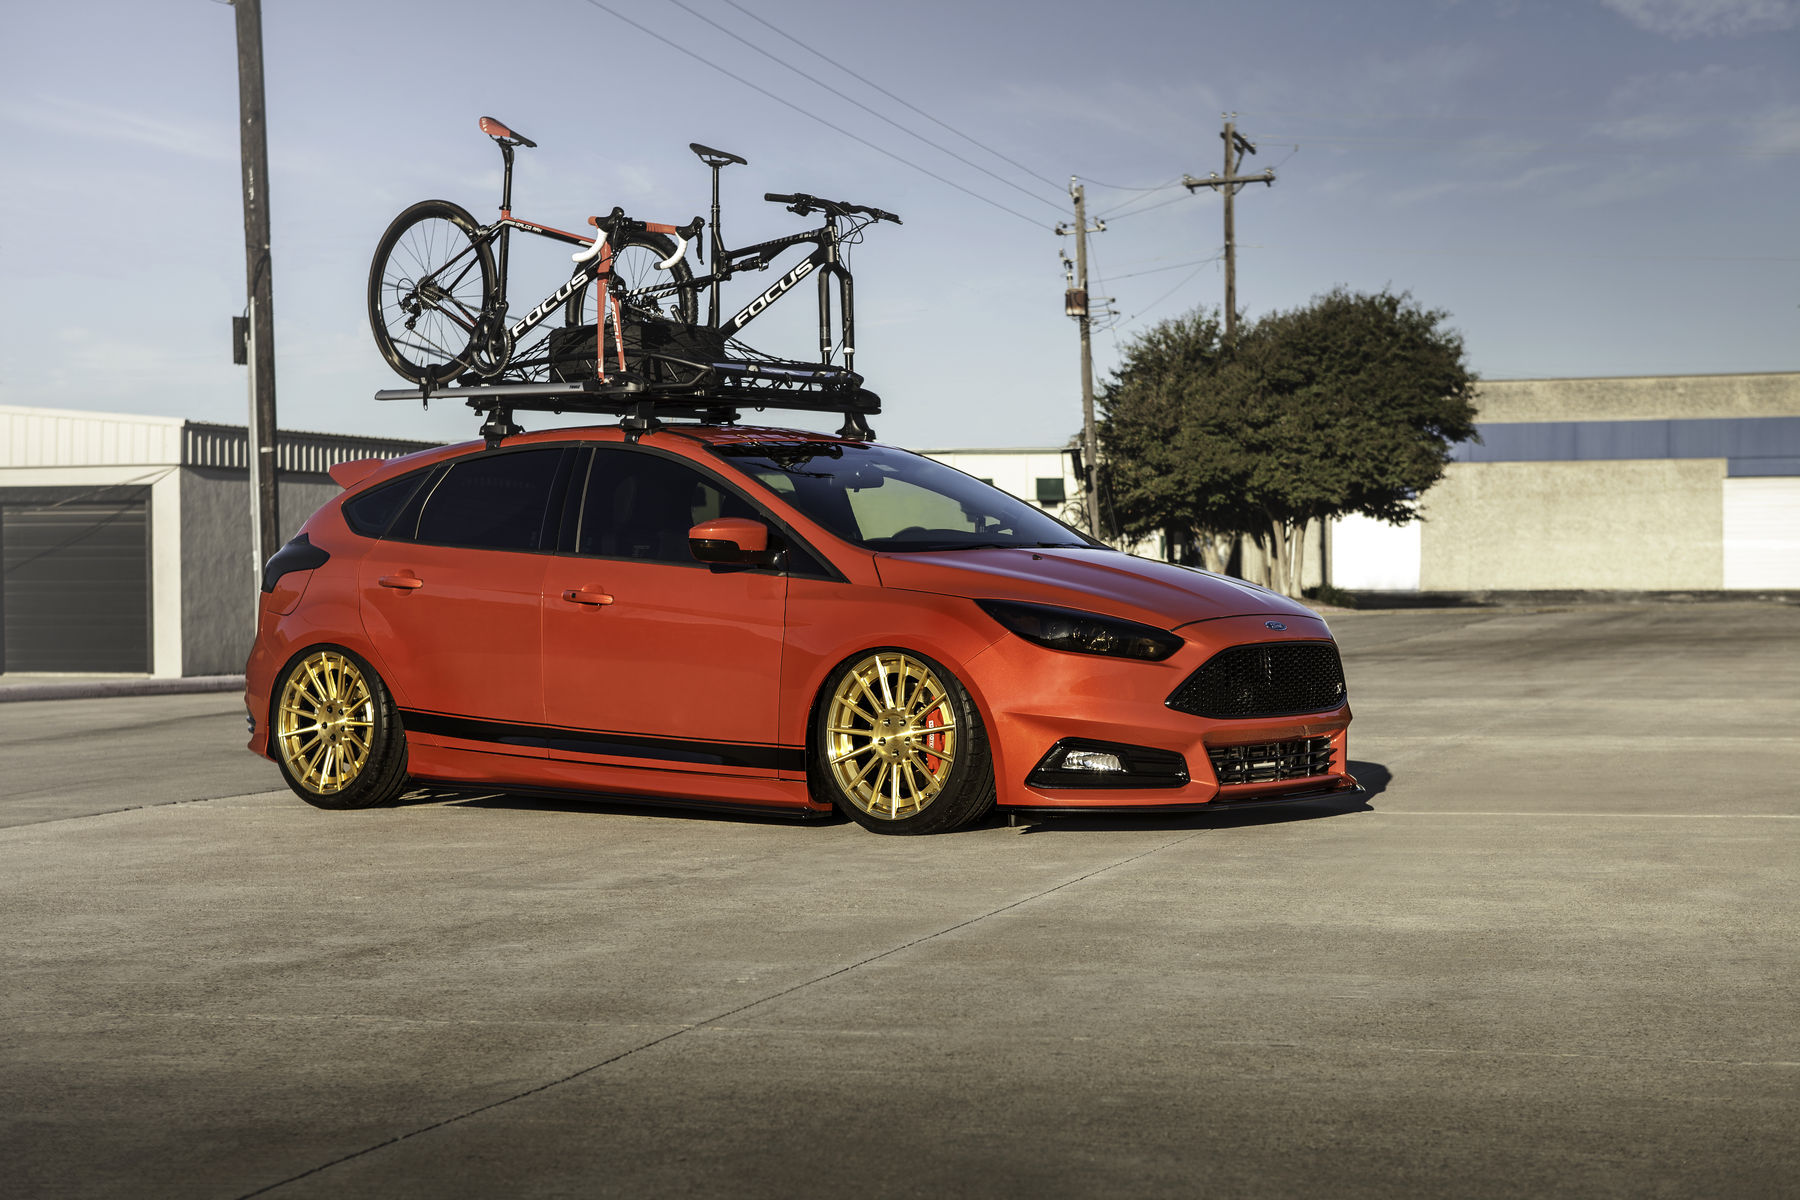 2015 Ford Focus ST | 2015 COBB Tuning Ford Focus ST - Bikes On Racks